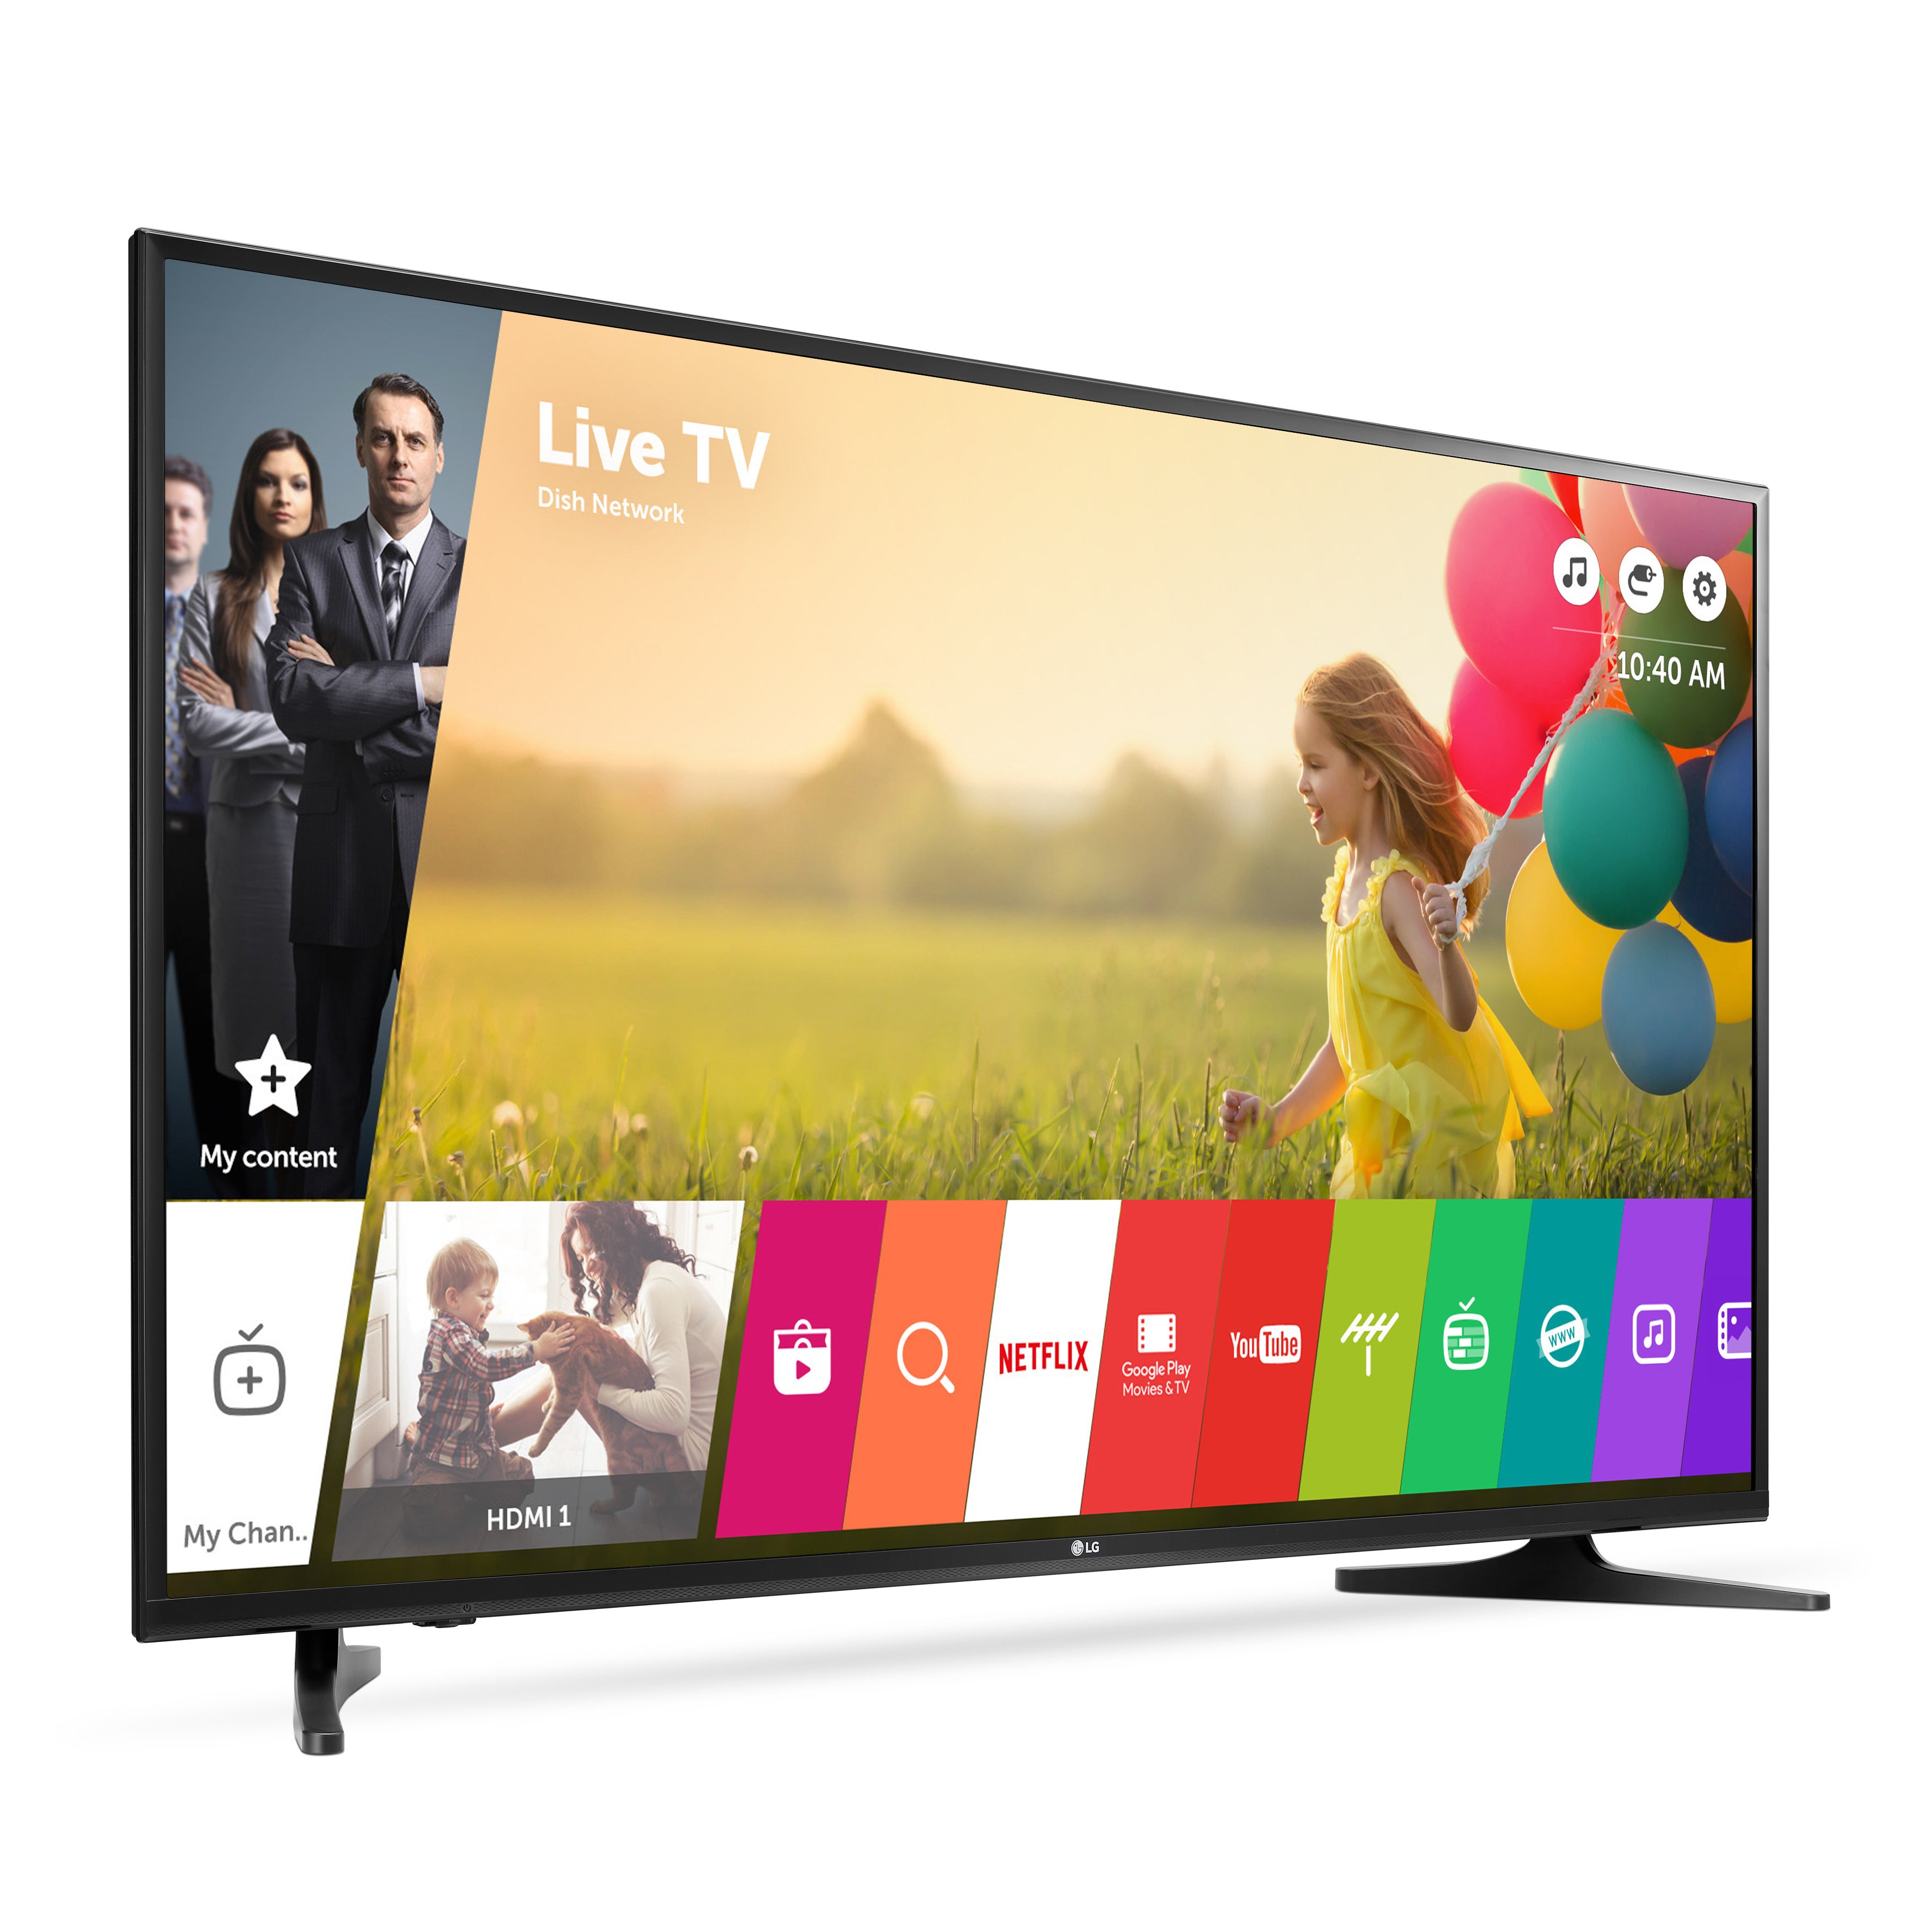 3ce5919d5 Shop LG 50UH5500 50-inch Class 4K UHD LED Television With Smart TV - Free  Shipping Today - Overstock - 12385385